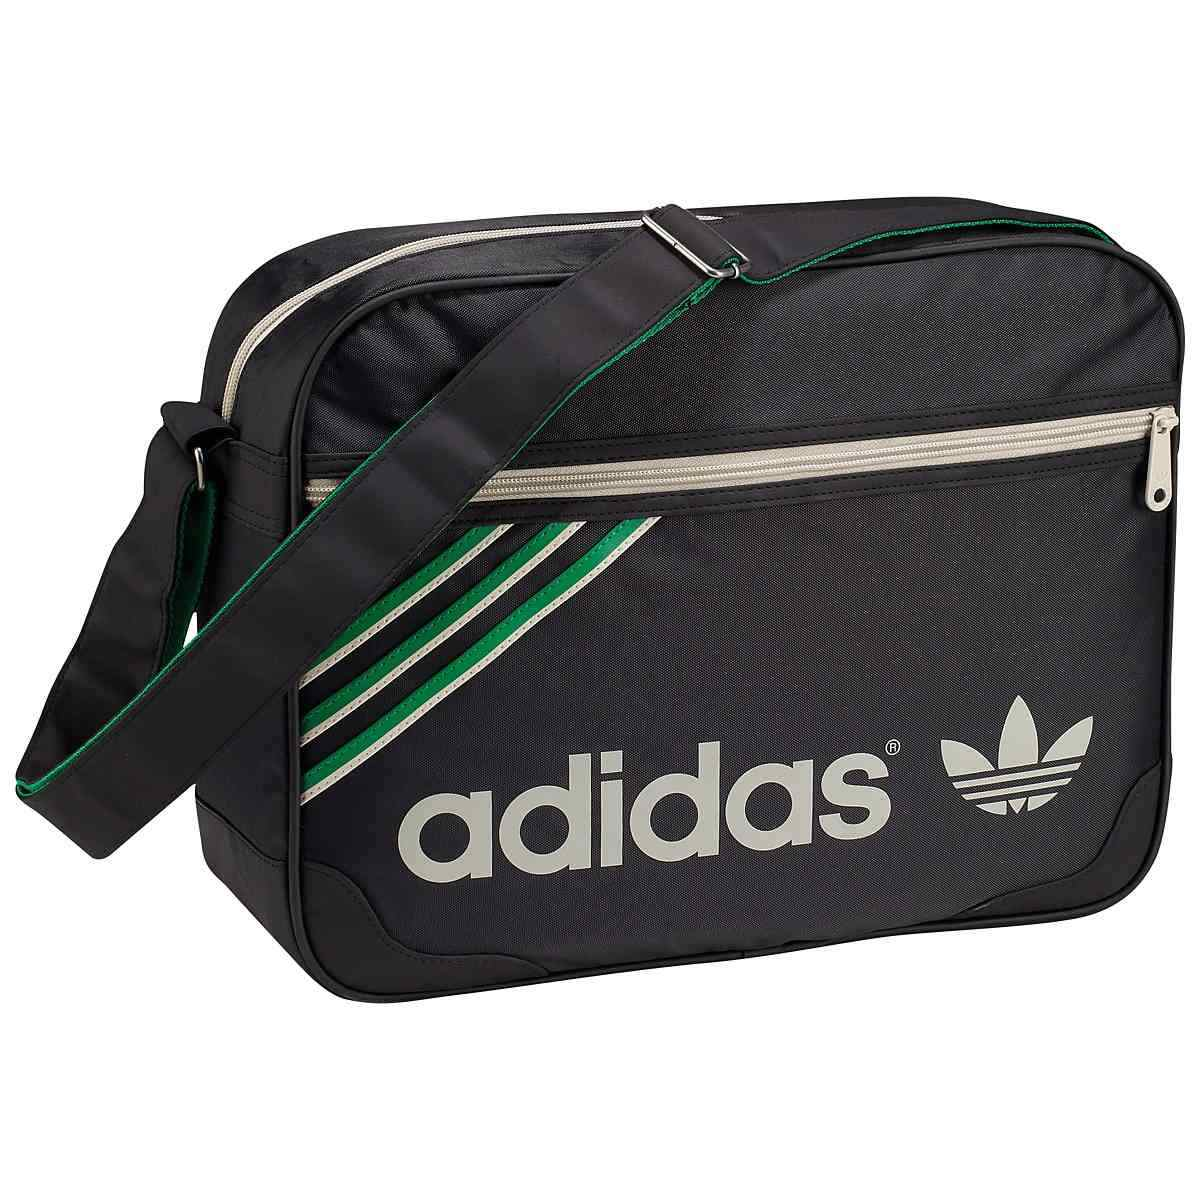 Sac A Bandouliere Adidas : Adidas originals airline bag adicolor messenger shoulder